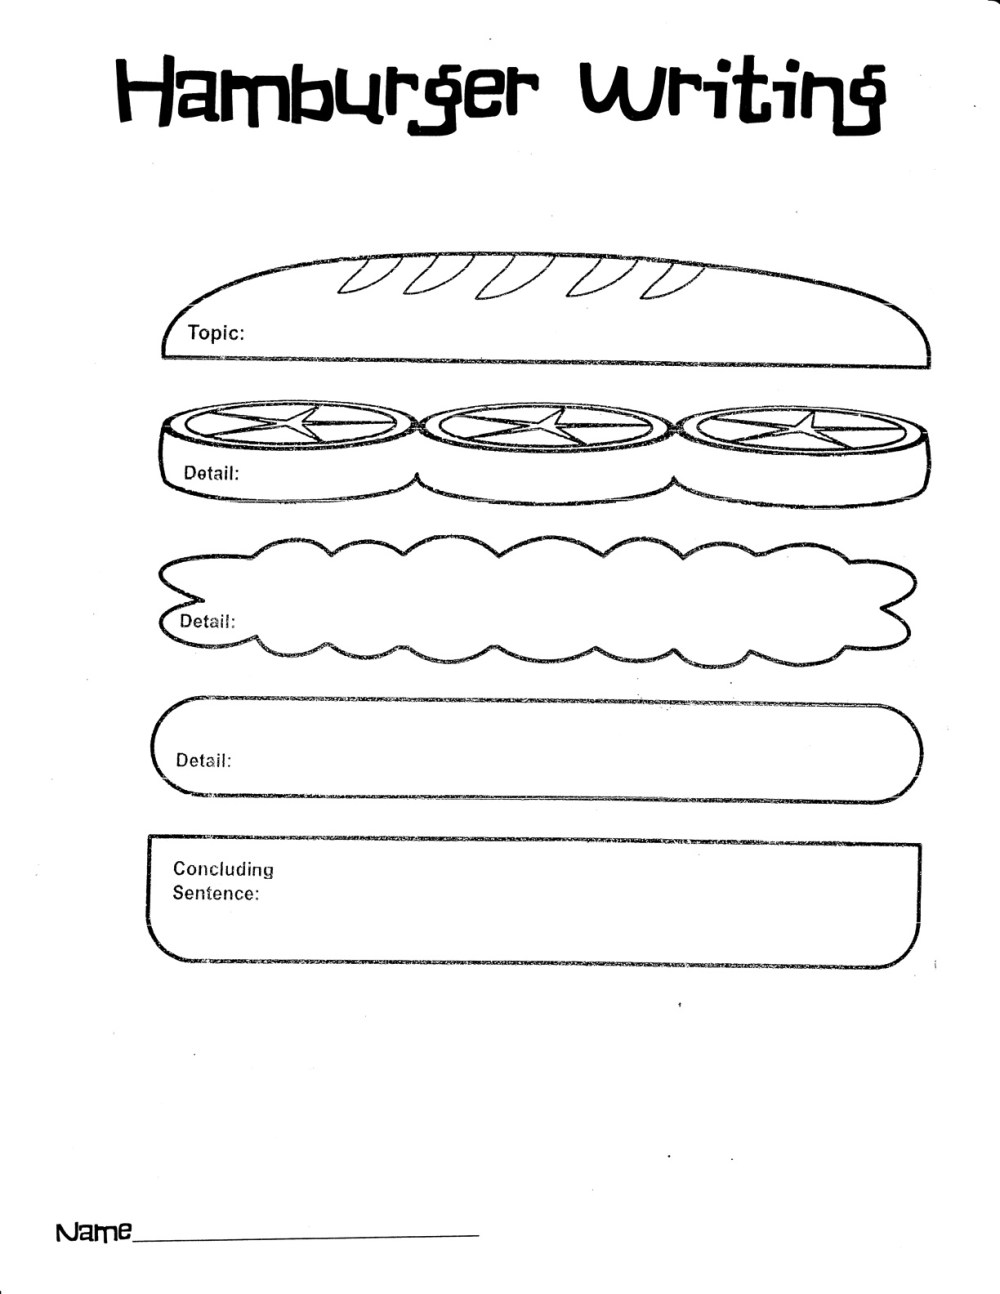 medium resolution of clip arts related to hamburger outline clipart